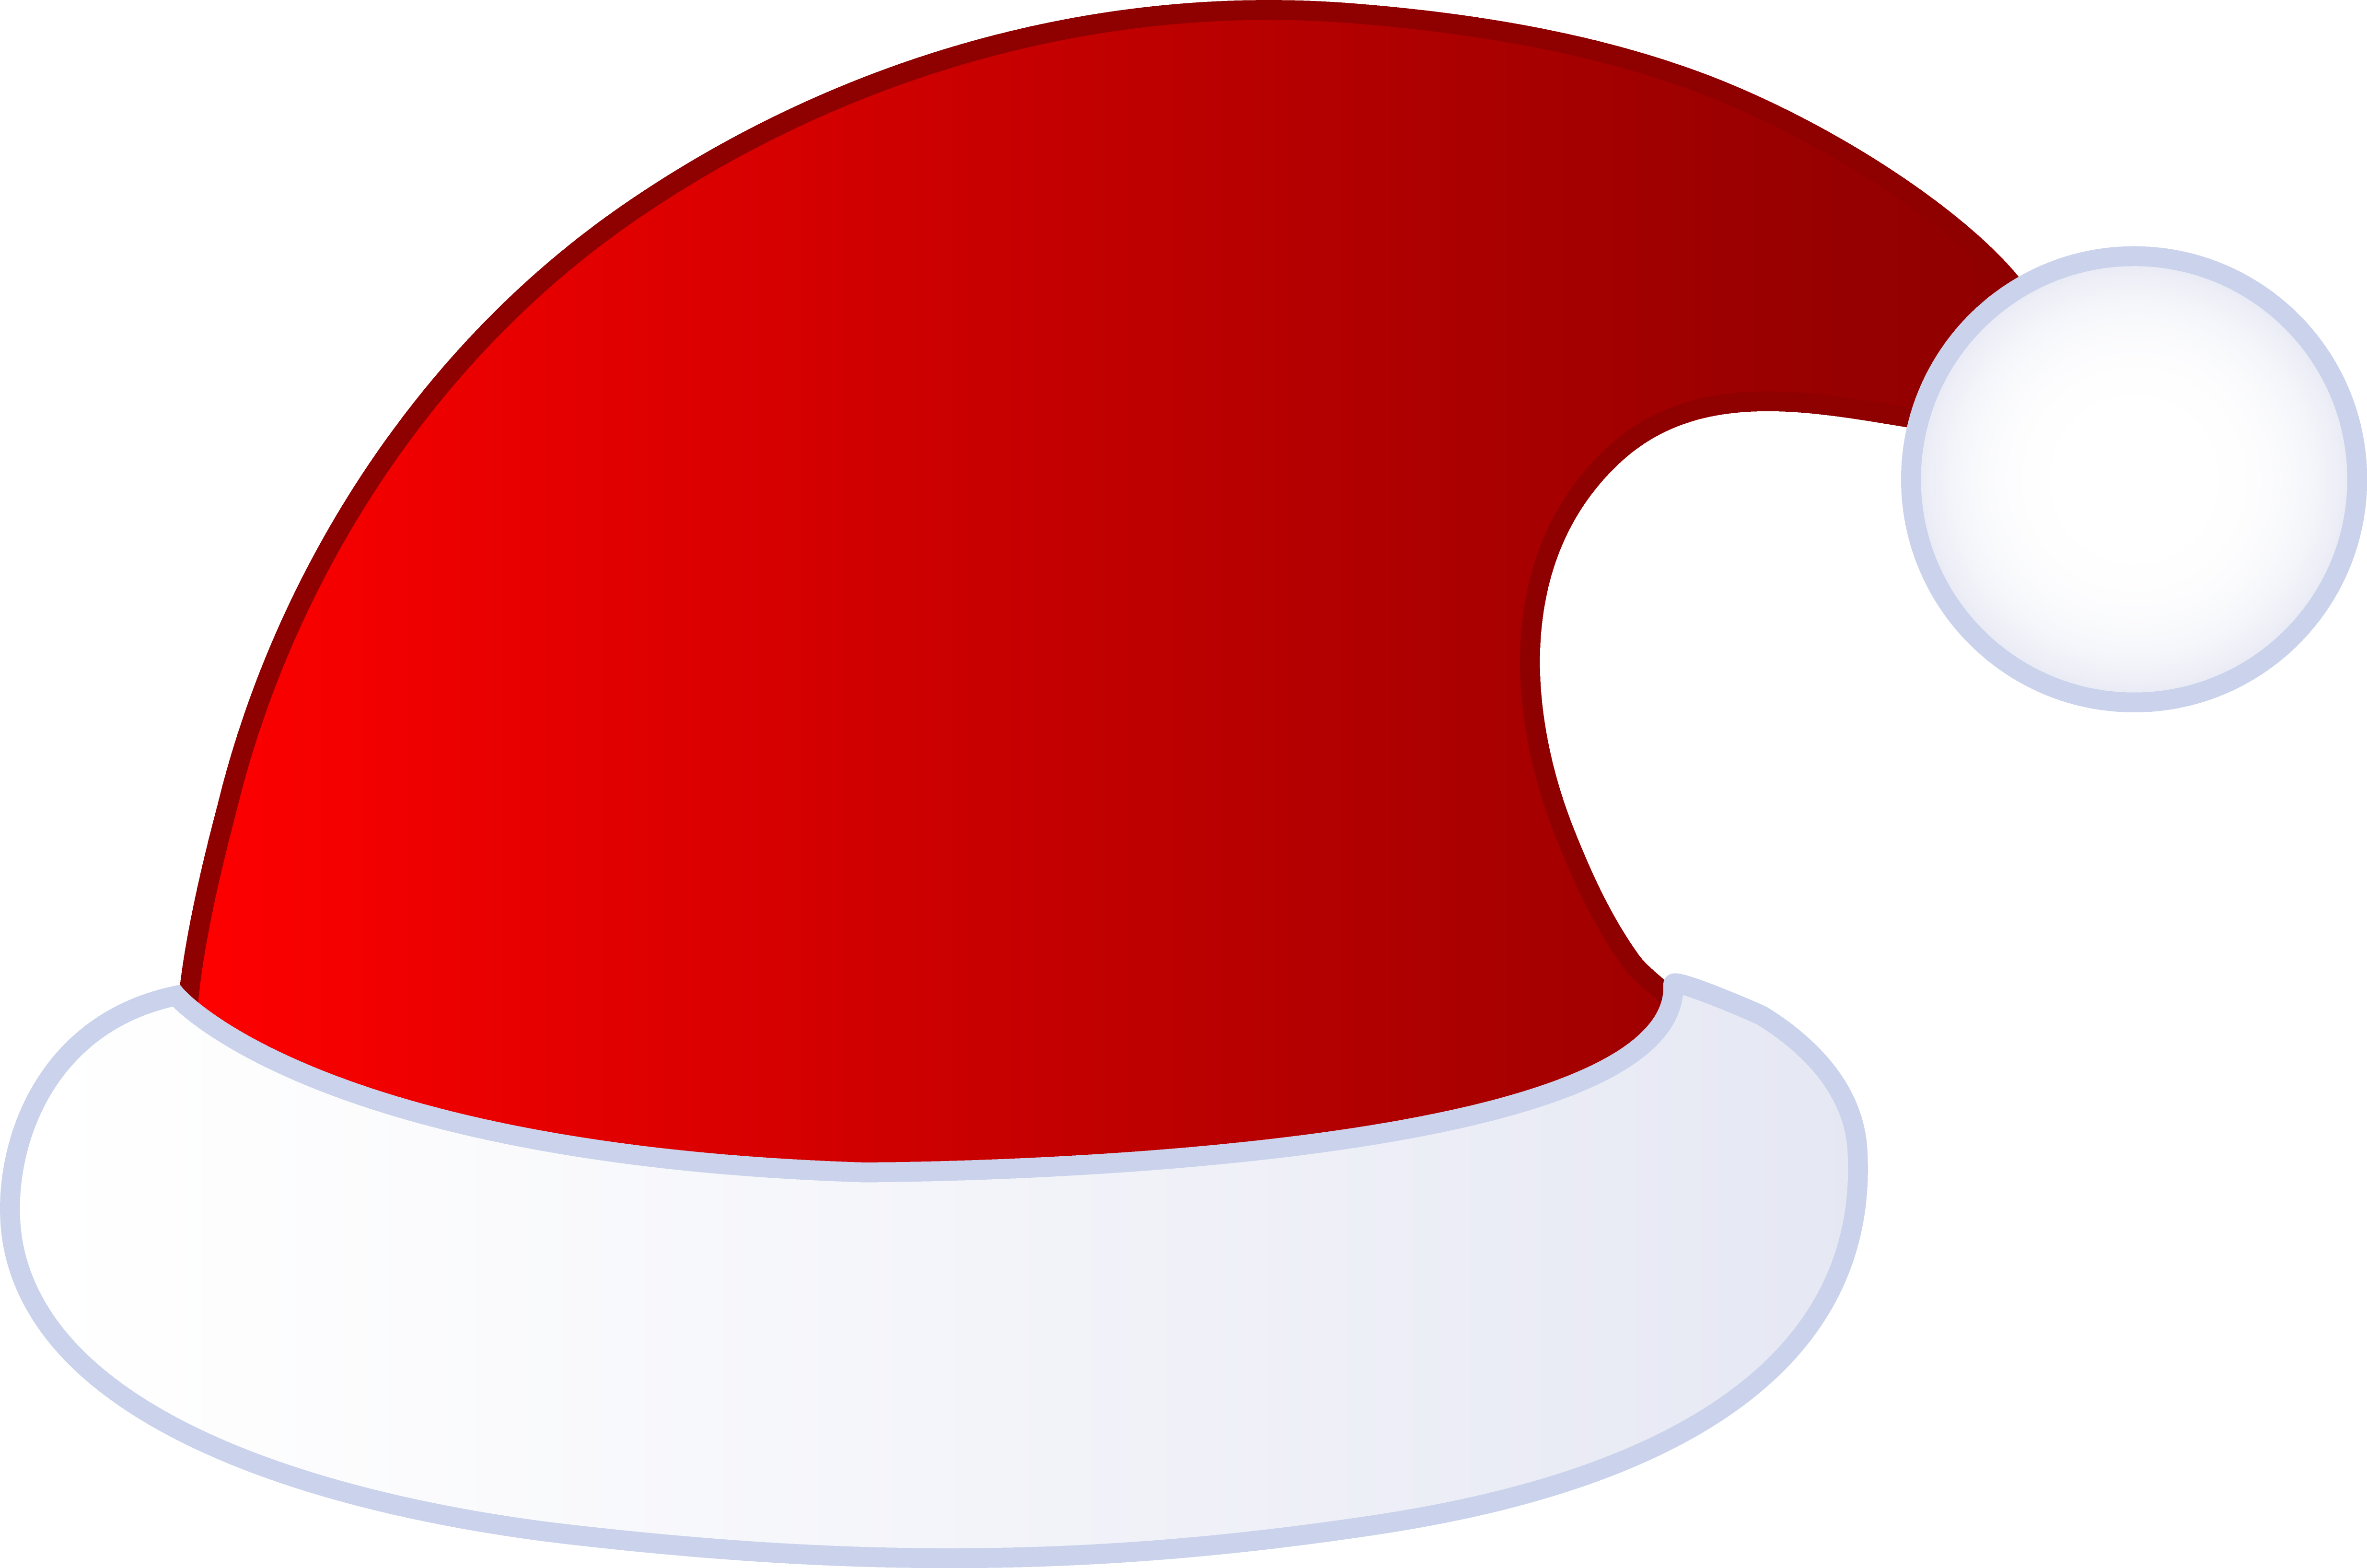 Cartoon Christmas Hats - Clipart library. Cartoon Santa Claus Hat Images Pictures - Becuo